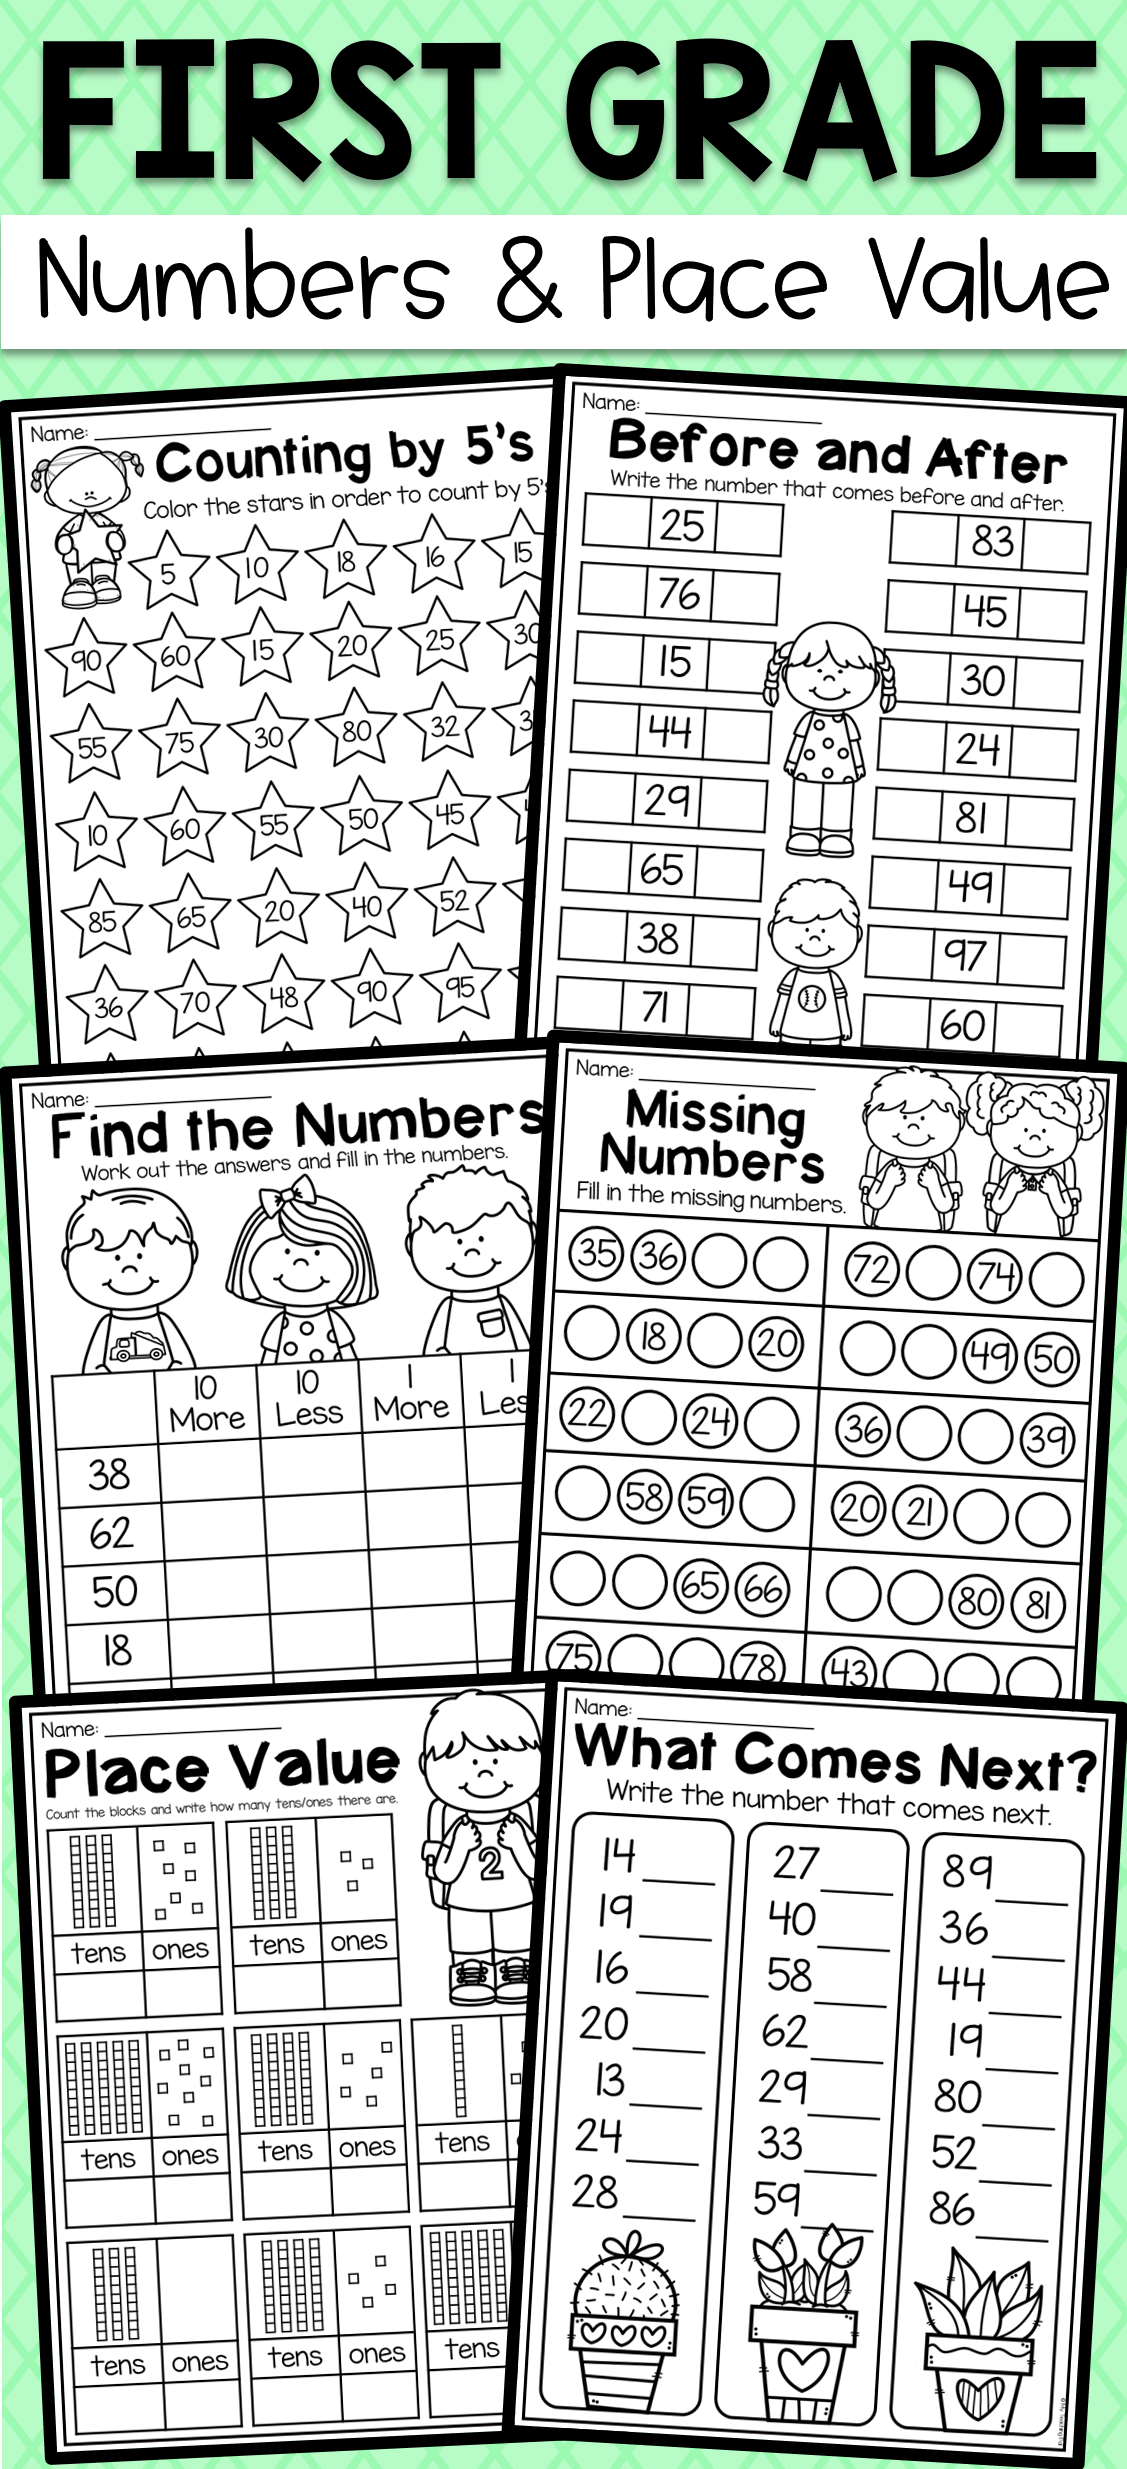 First Grade Numbers And Place Value Worksheets Dream Classroom In 2020 First Grade Math Worksheets First Grade Worksheets First Grade Homework [ 2469 x 1127 Pixel ]